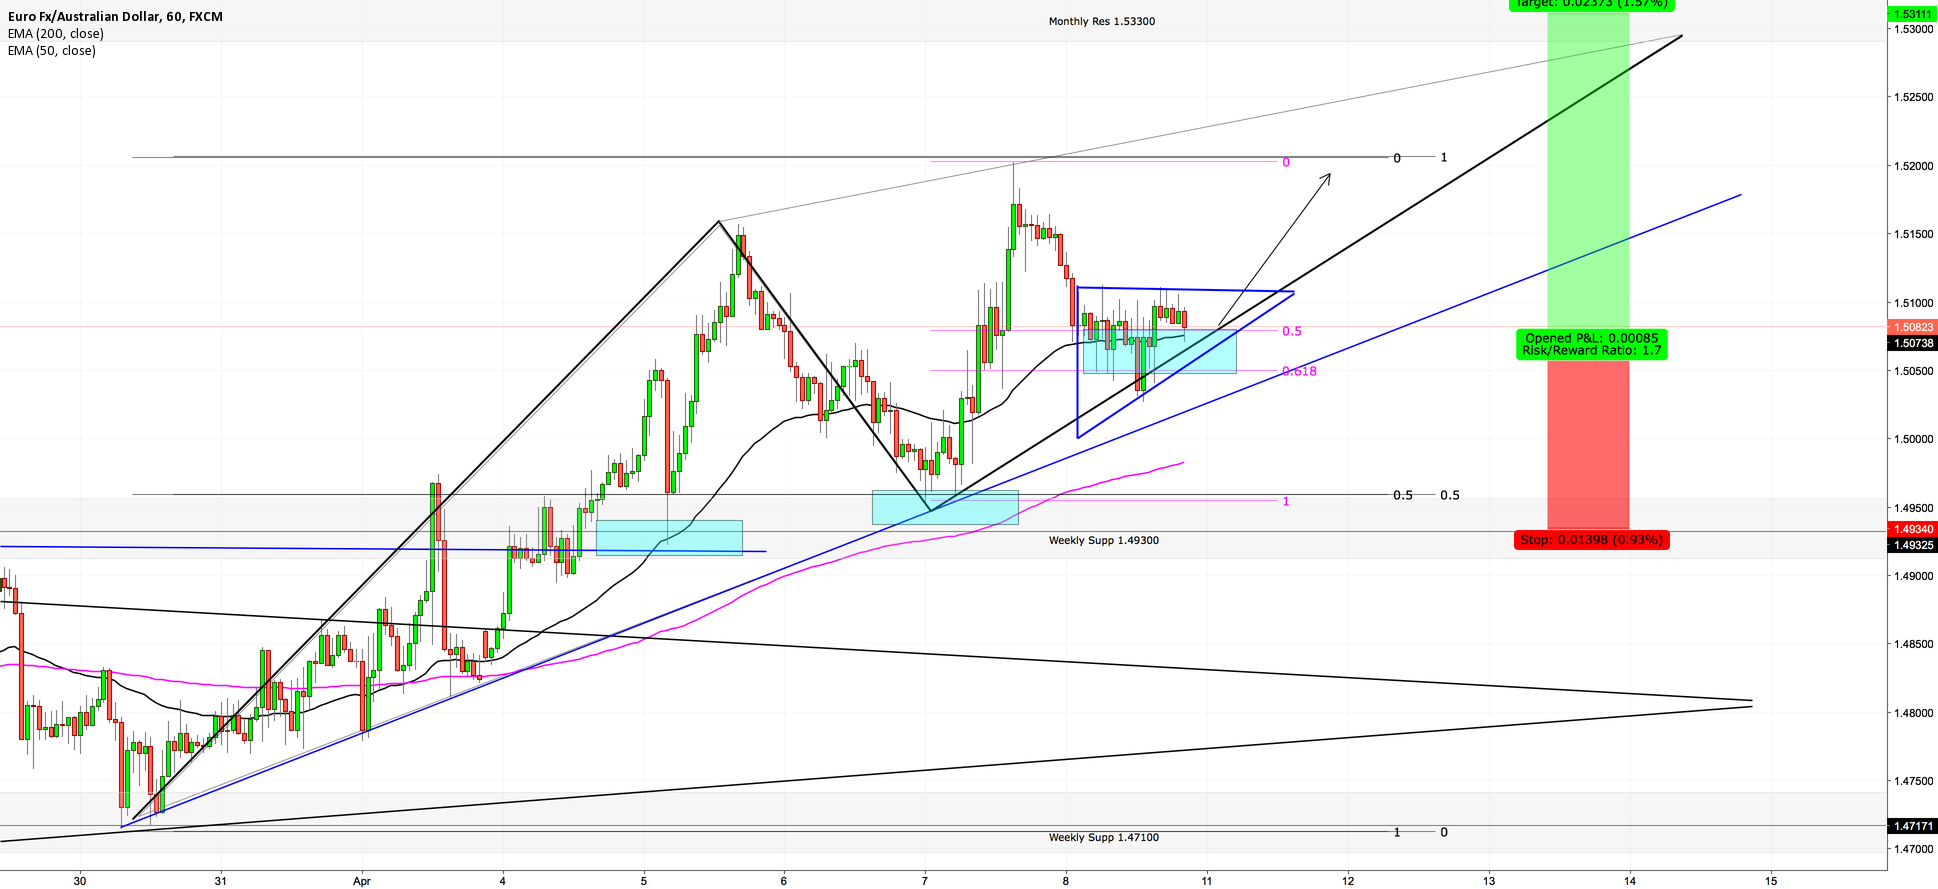 EURAUD -- [UPDATE] WE ARE STILL LONG ON BREAK OF TRIANGLE!